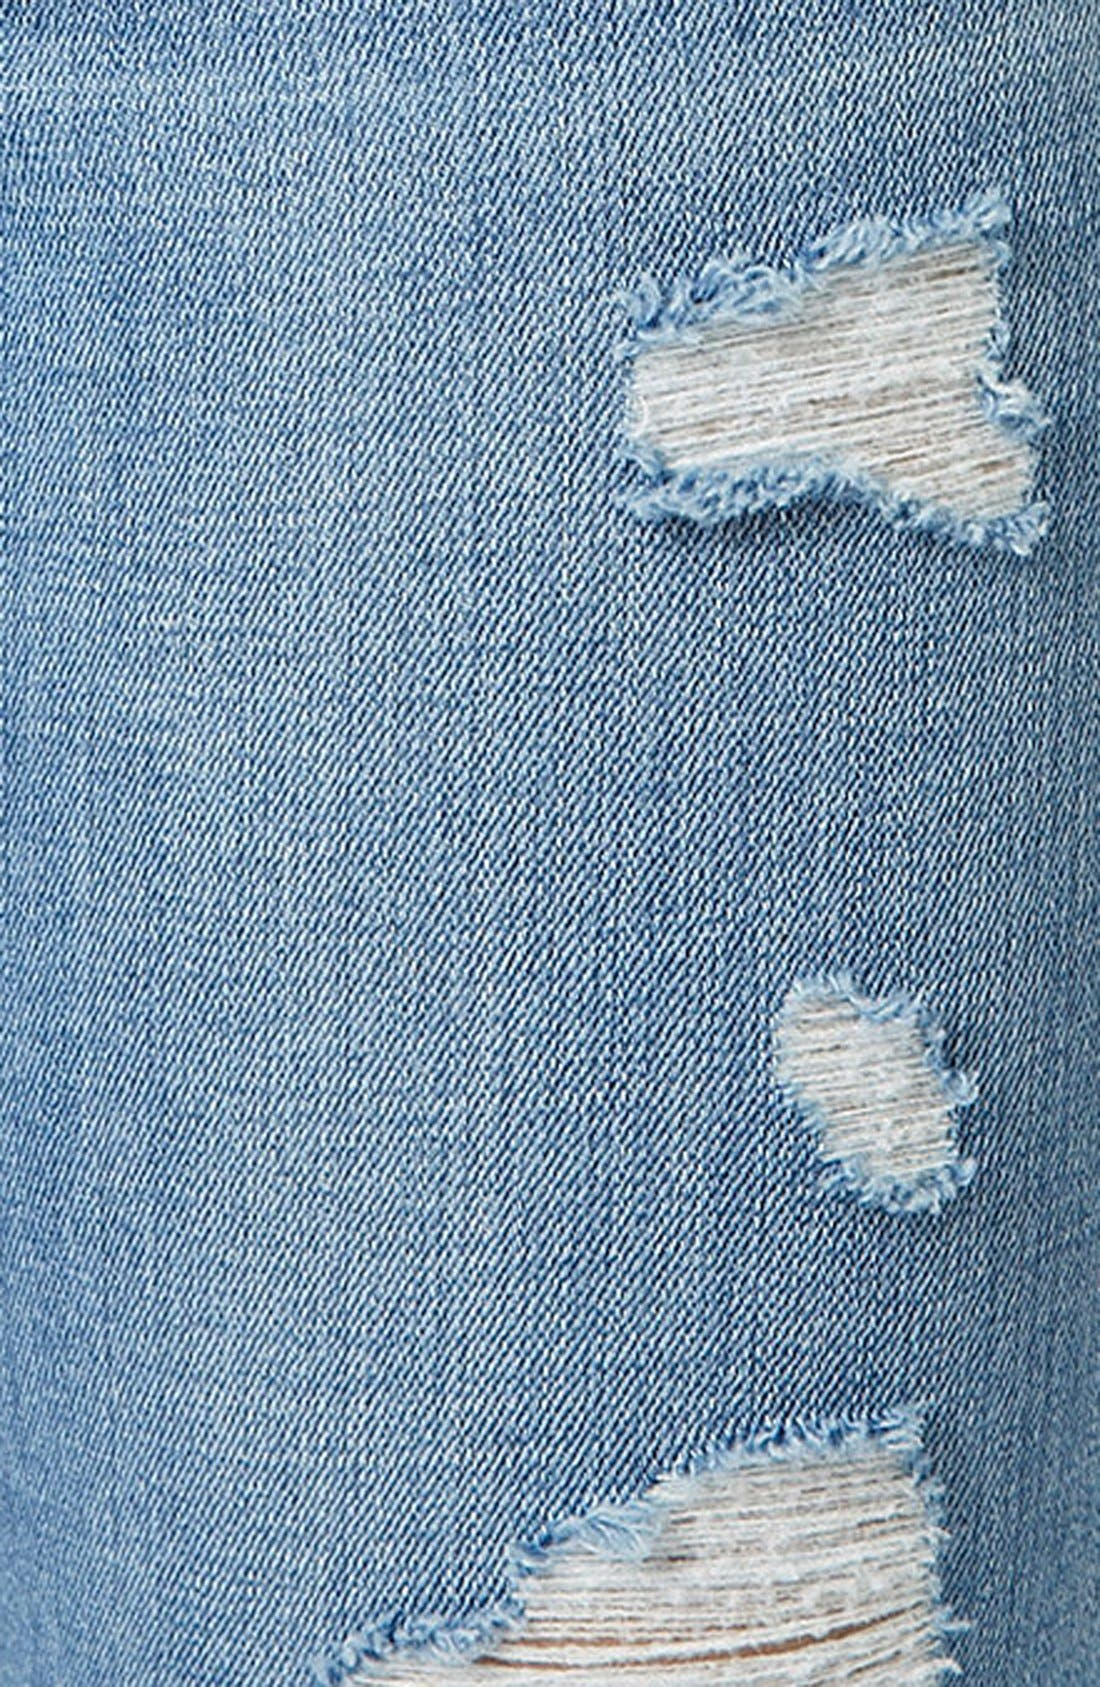 Alternate Image 4  - Topshop Moto High Rise Ripped Jeans (Light Denim) (Short)